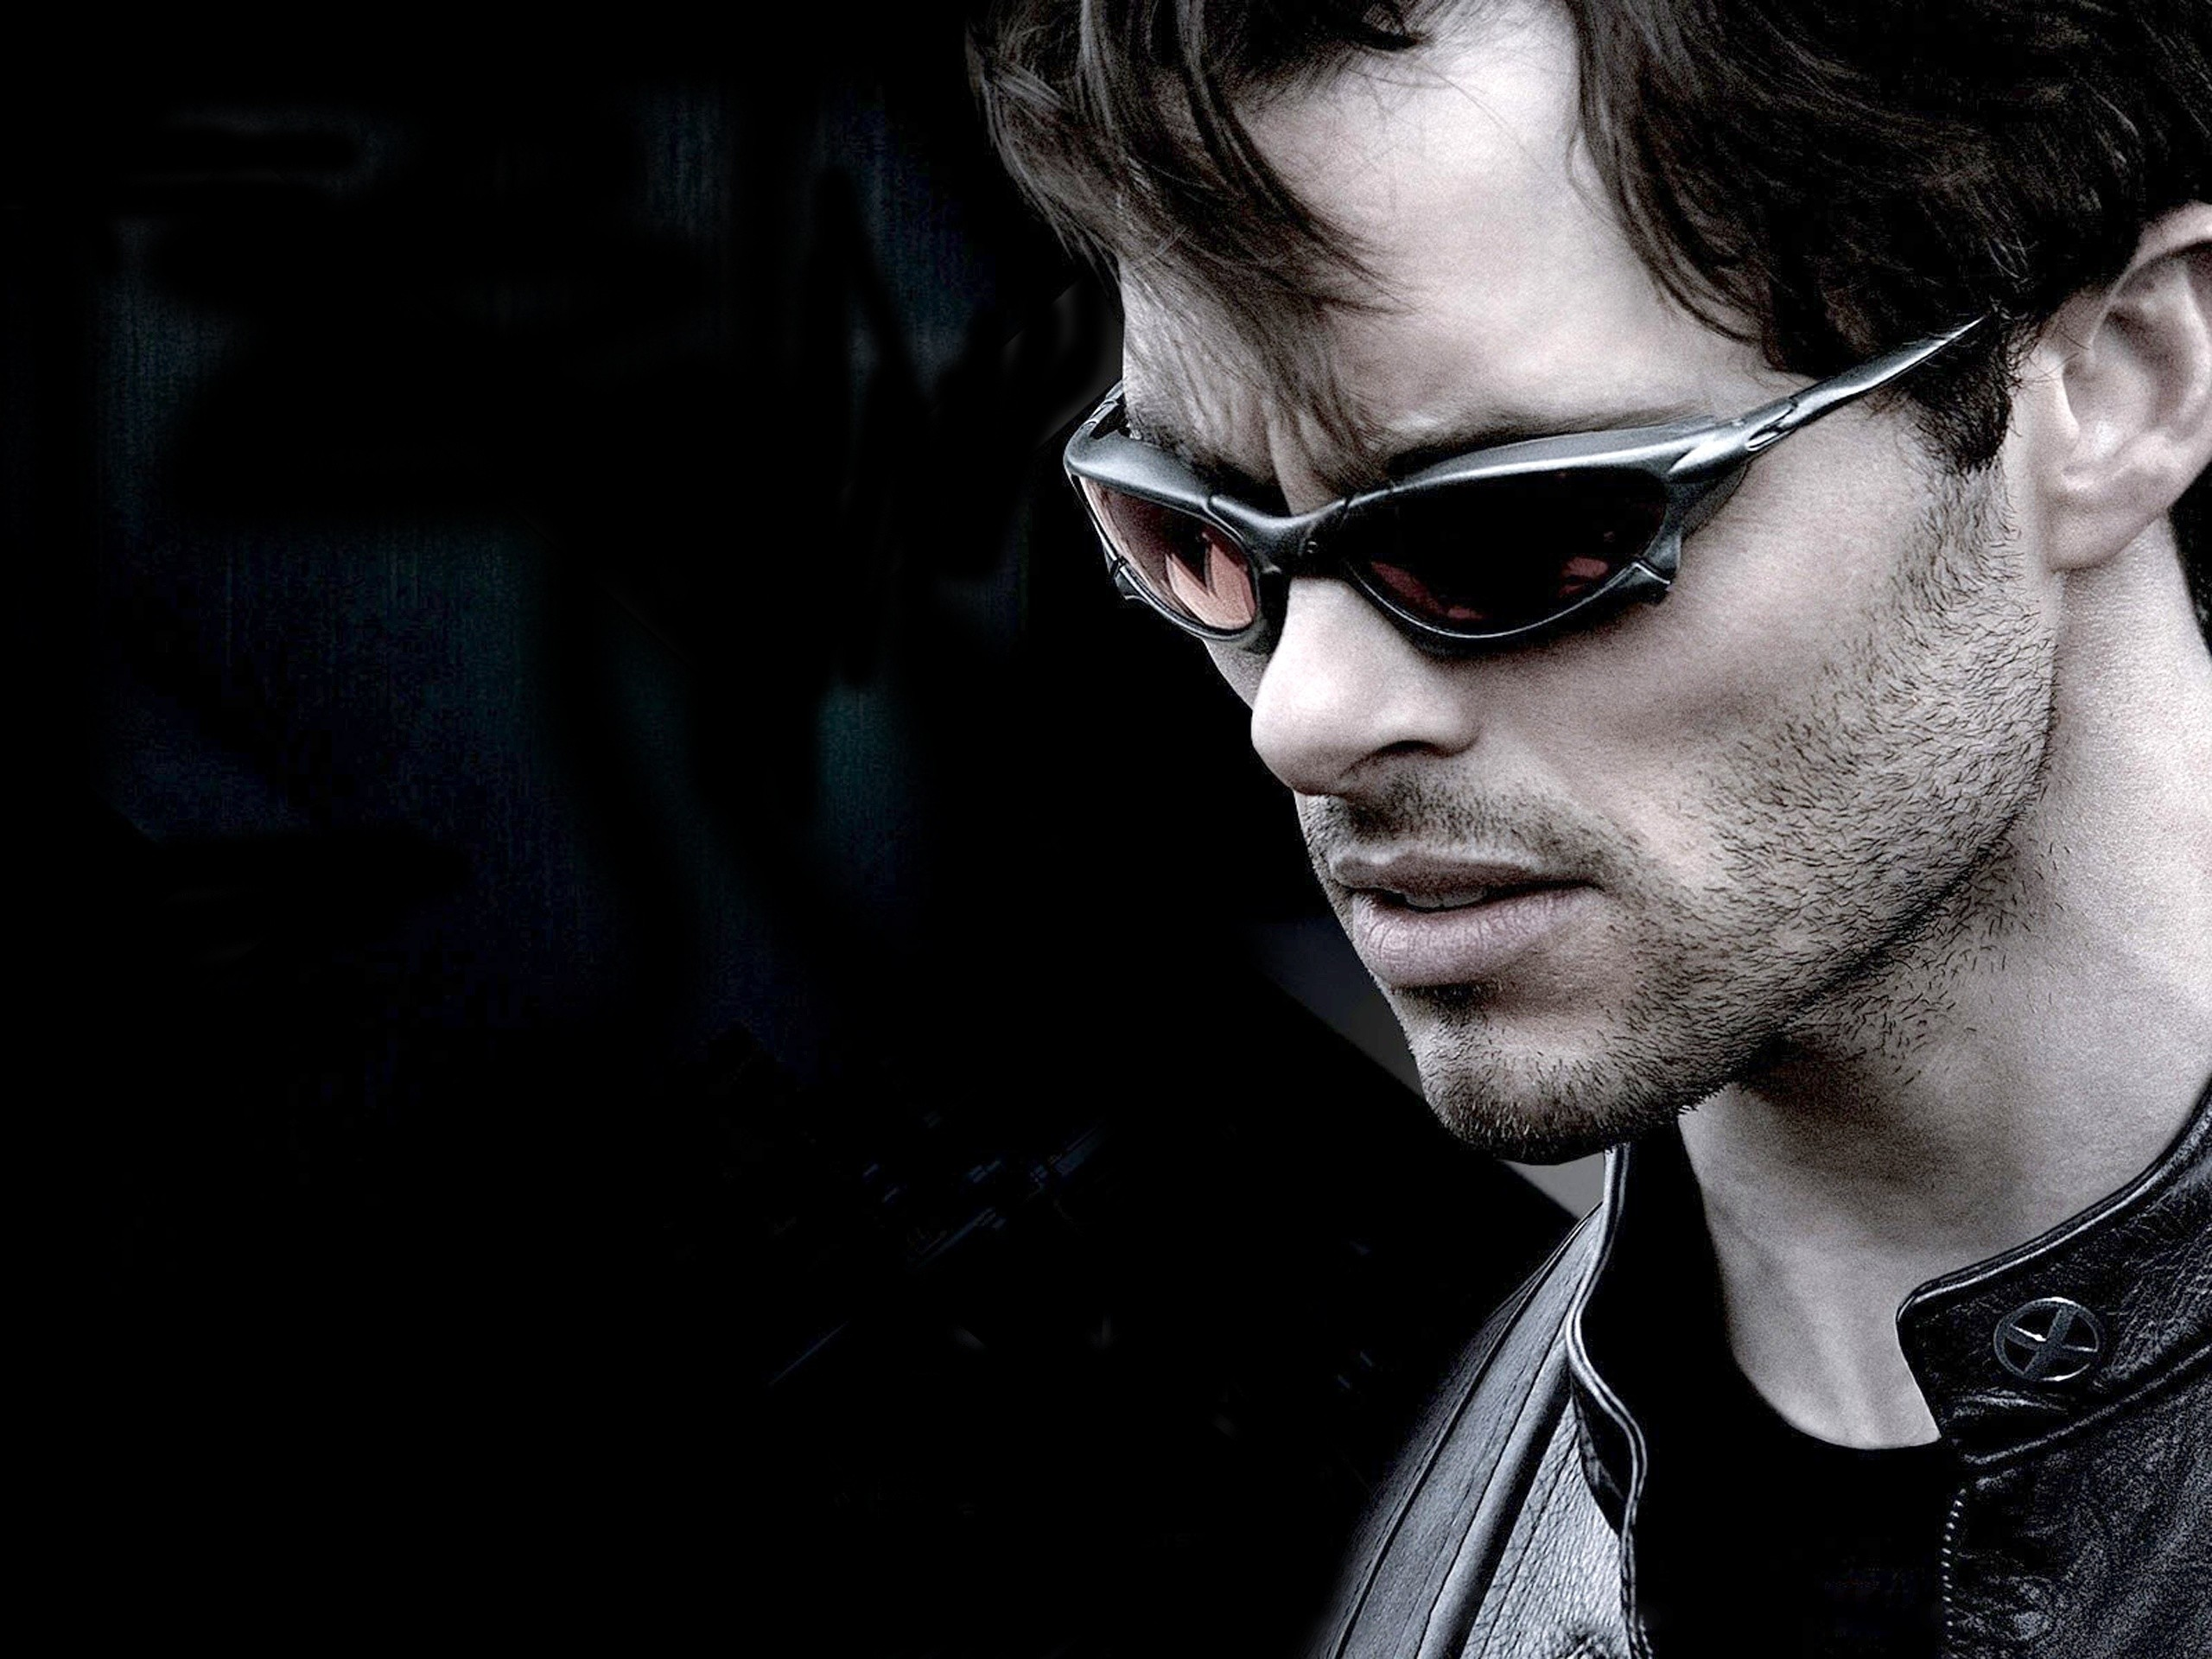 Download X Men Sunglasses Wallpaper 2560x1920 Wallpoper 362002 2560x1920